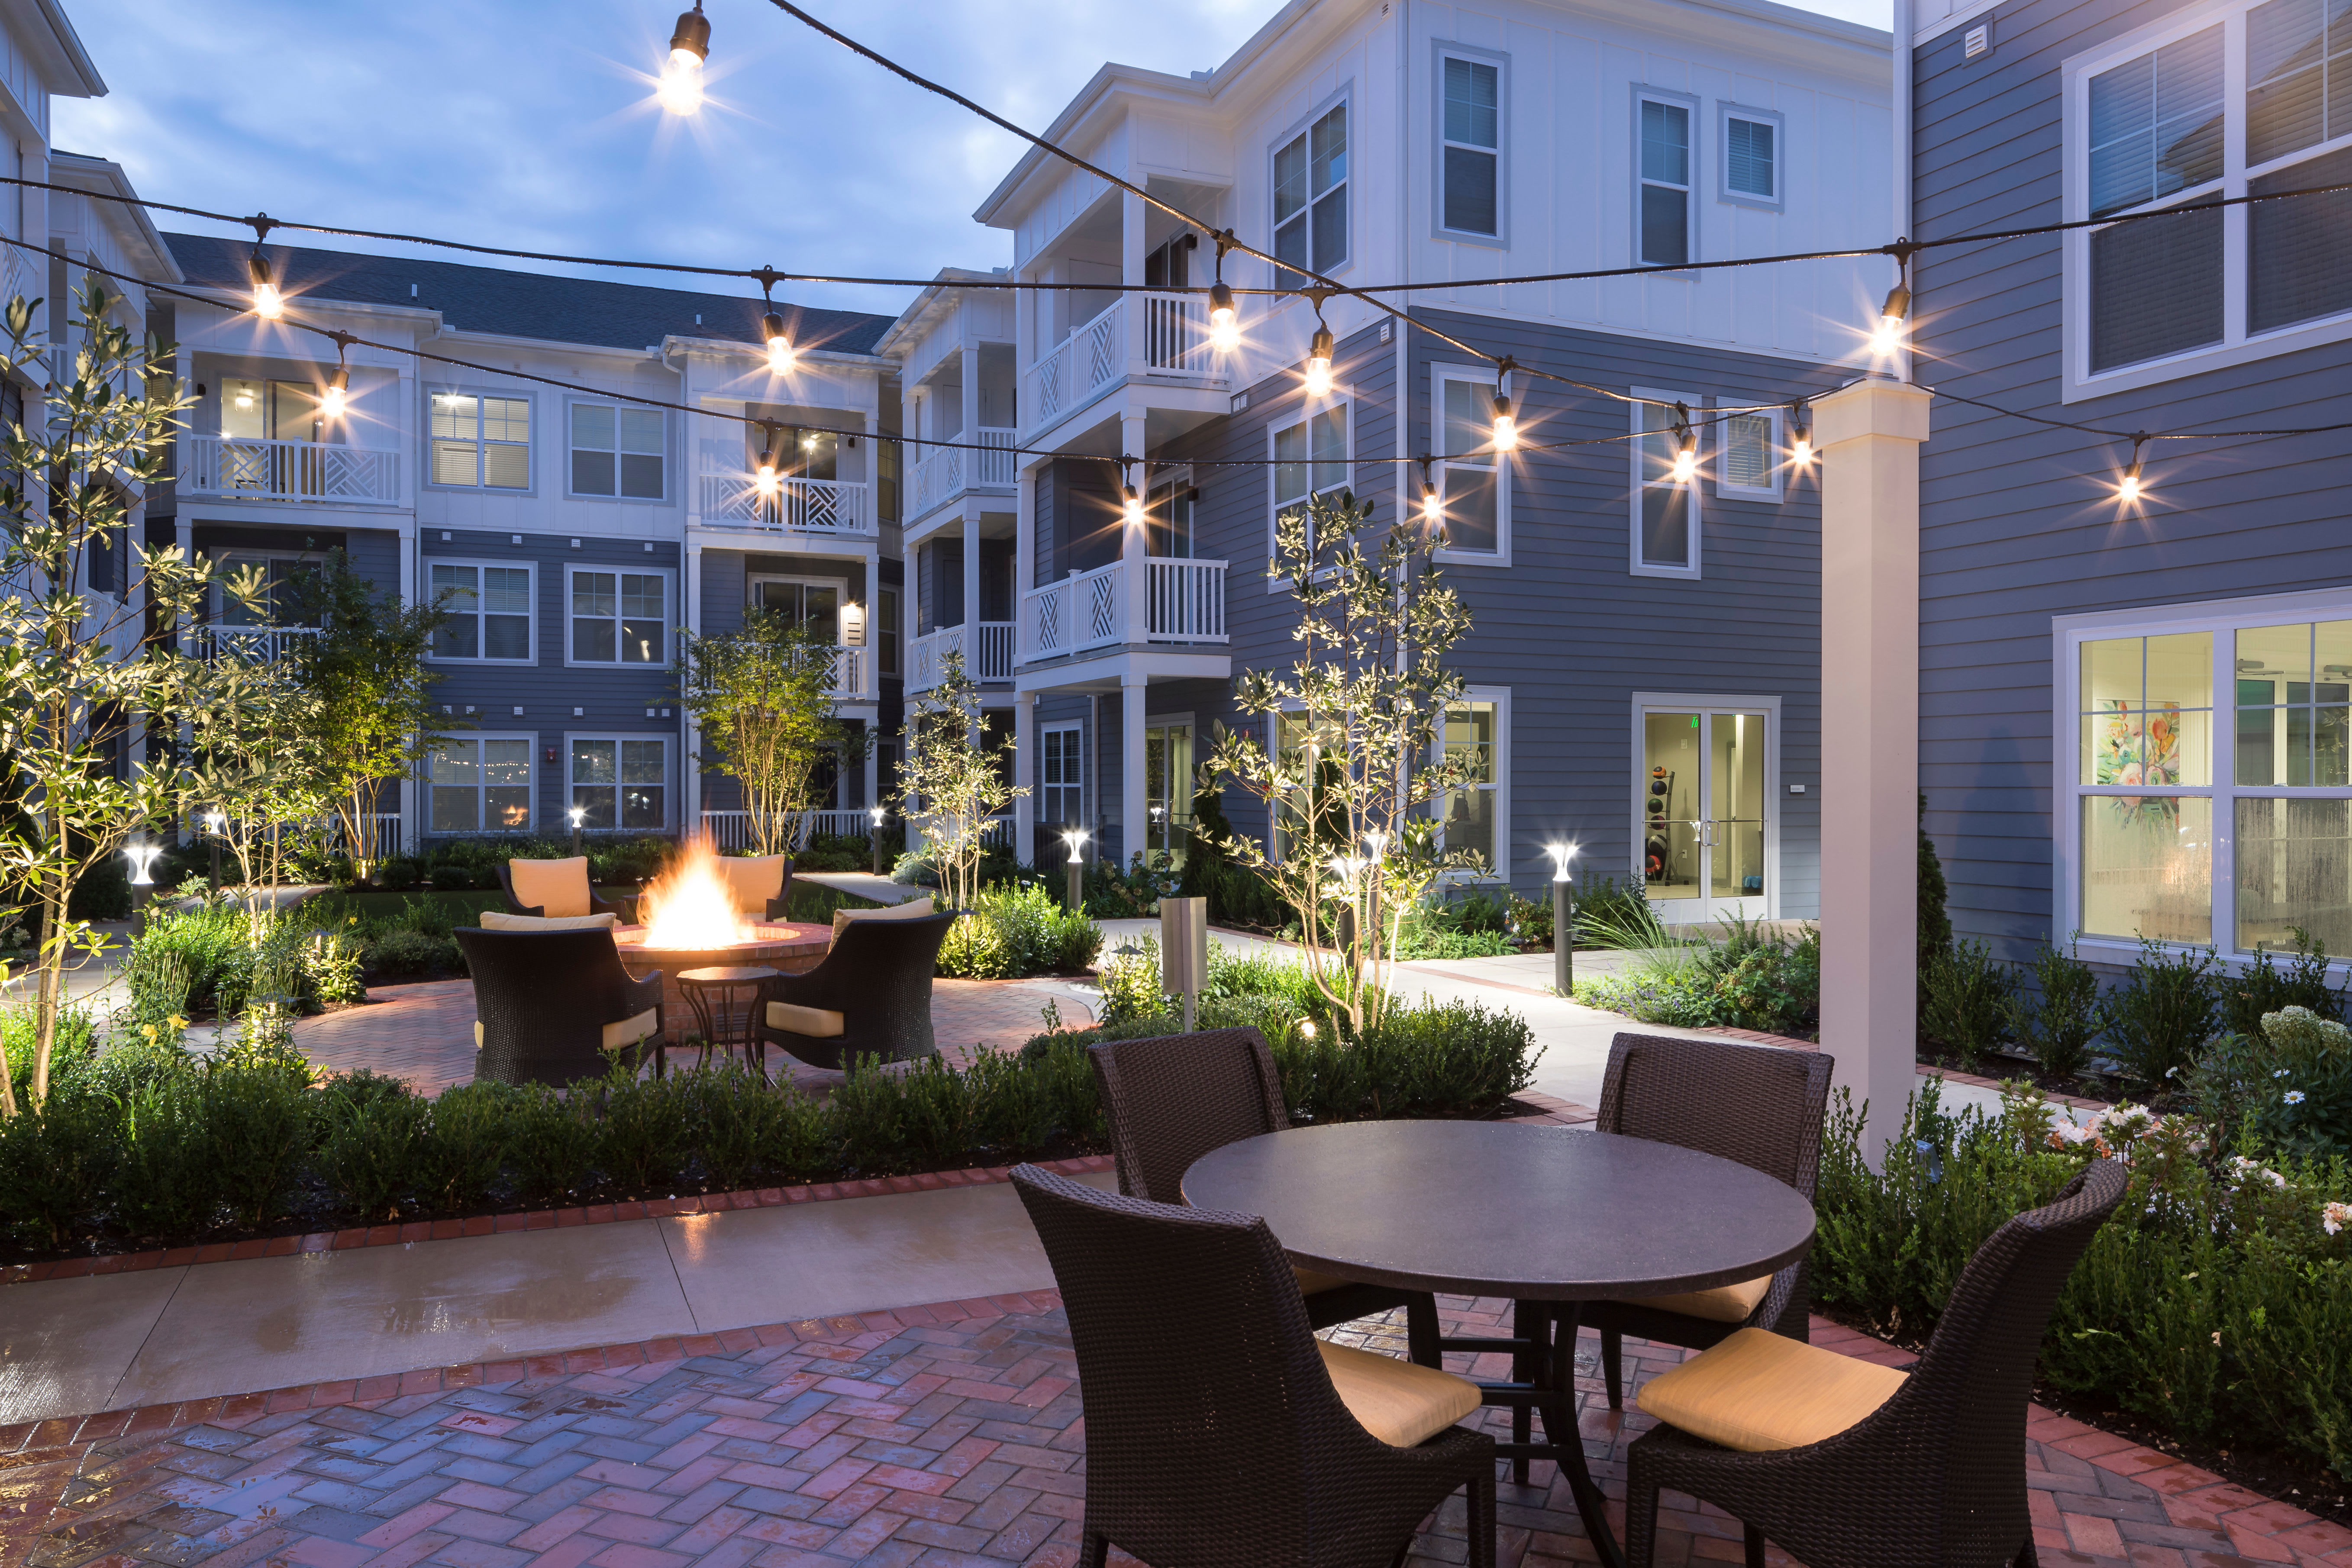 Outdoor tables and lighting - Avenida Cool Springs Active Senior Living in Franklin, TN